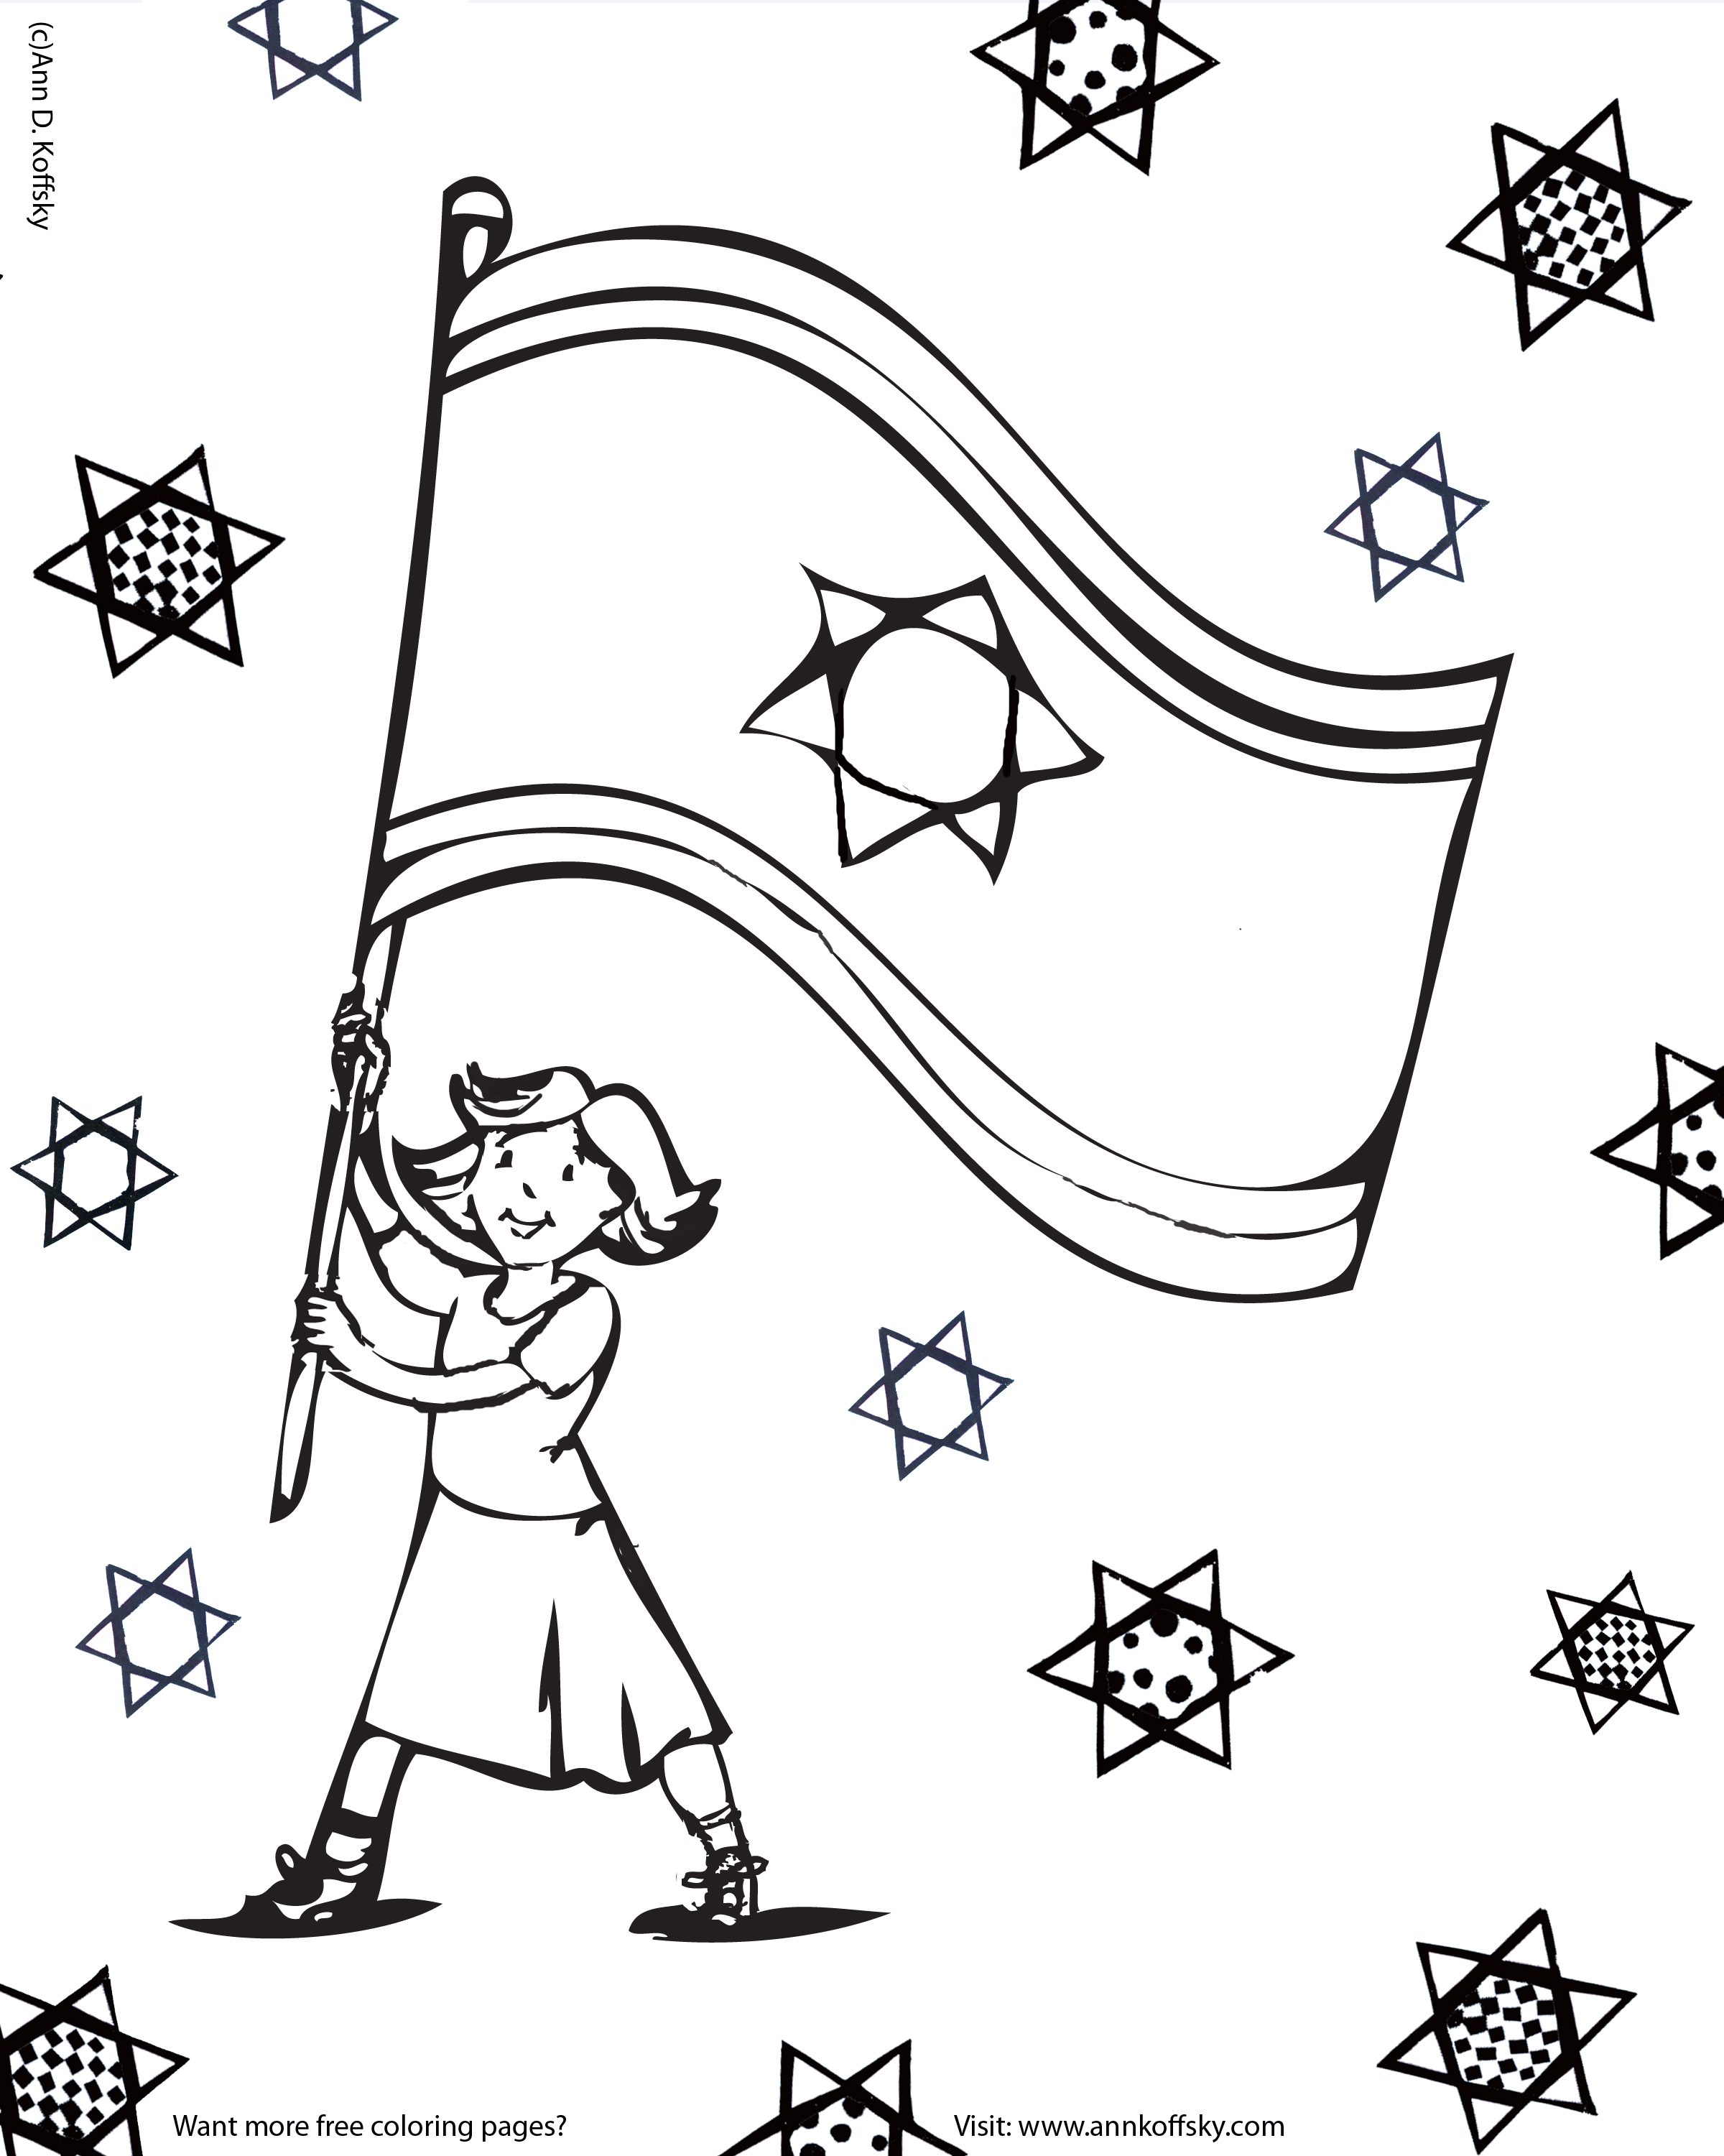 Yom ha atzmaut israel independence day for Flag of israel coloring page